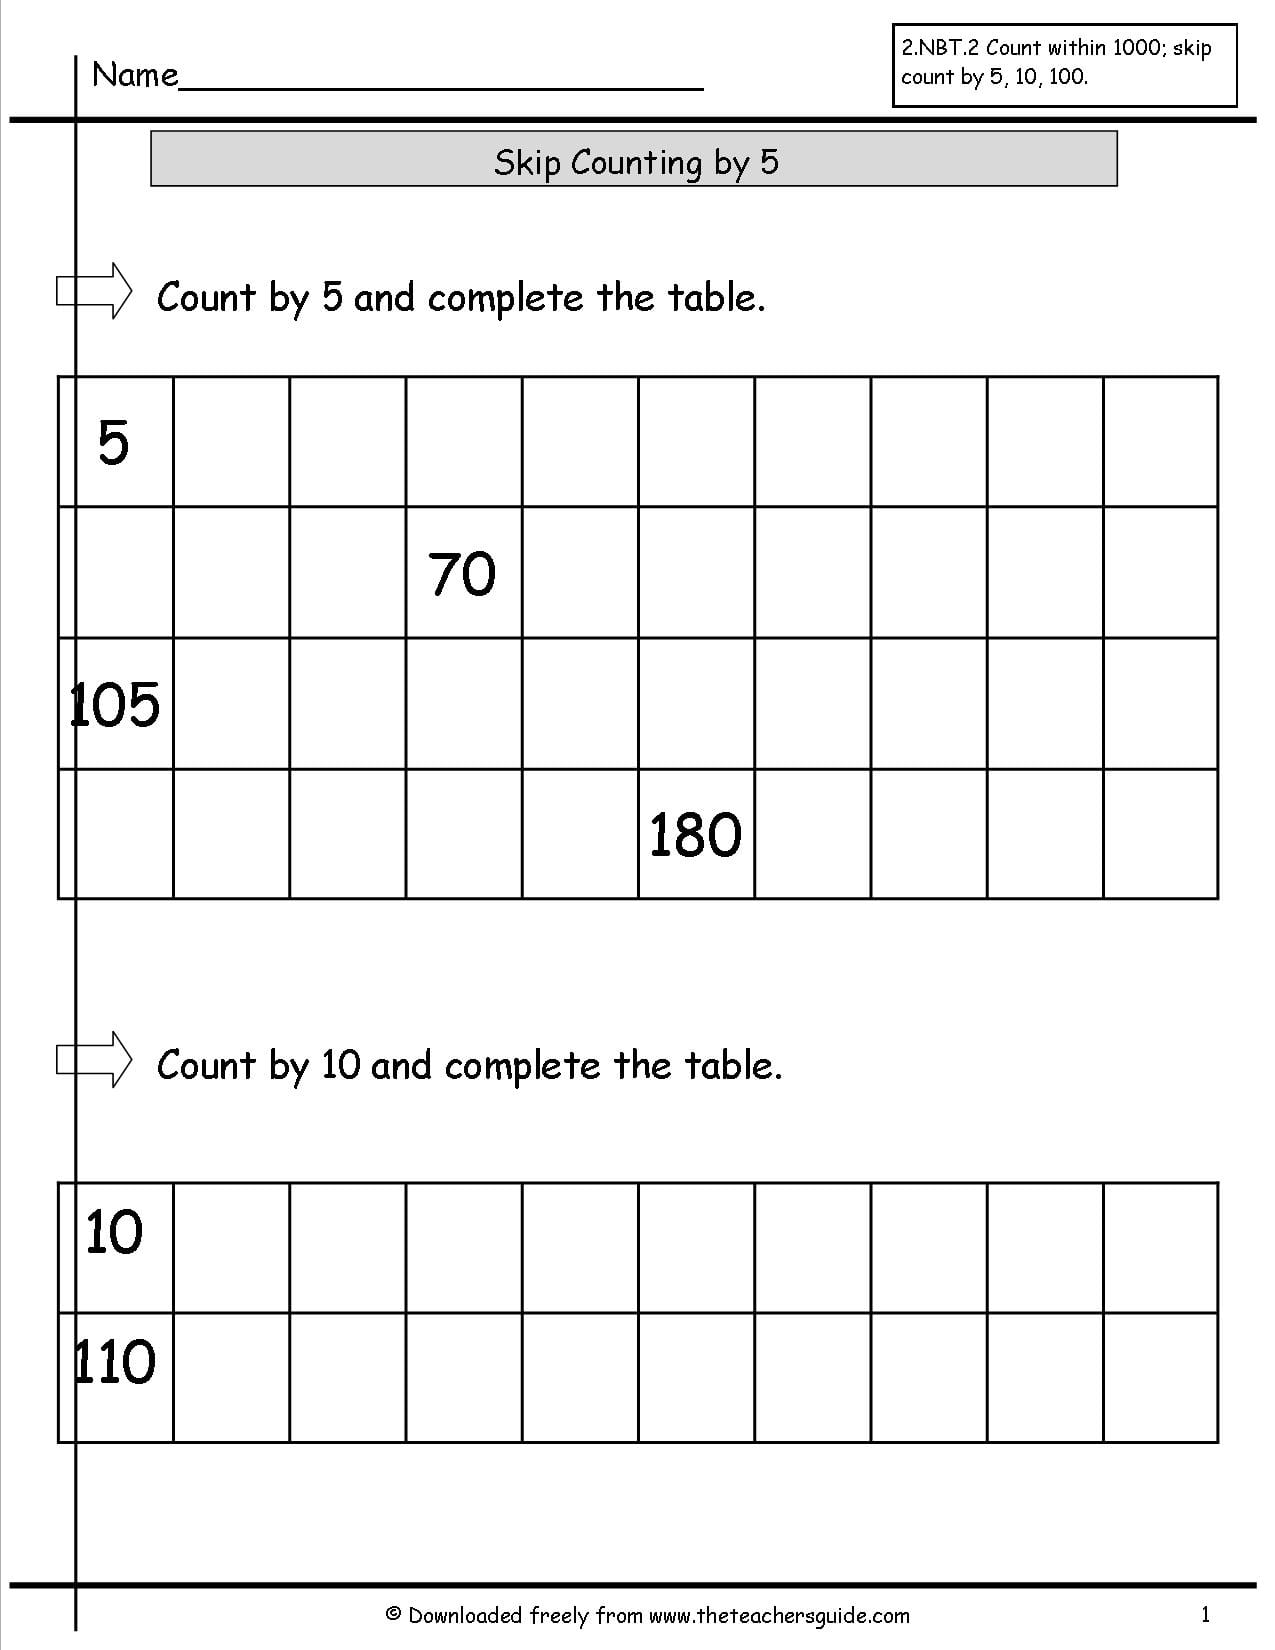 Skip Counting By 5 10 100 Worksheets